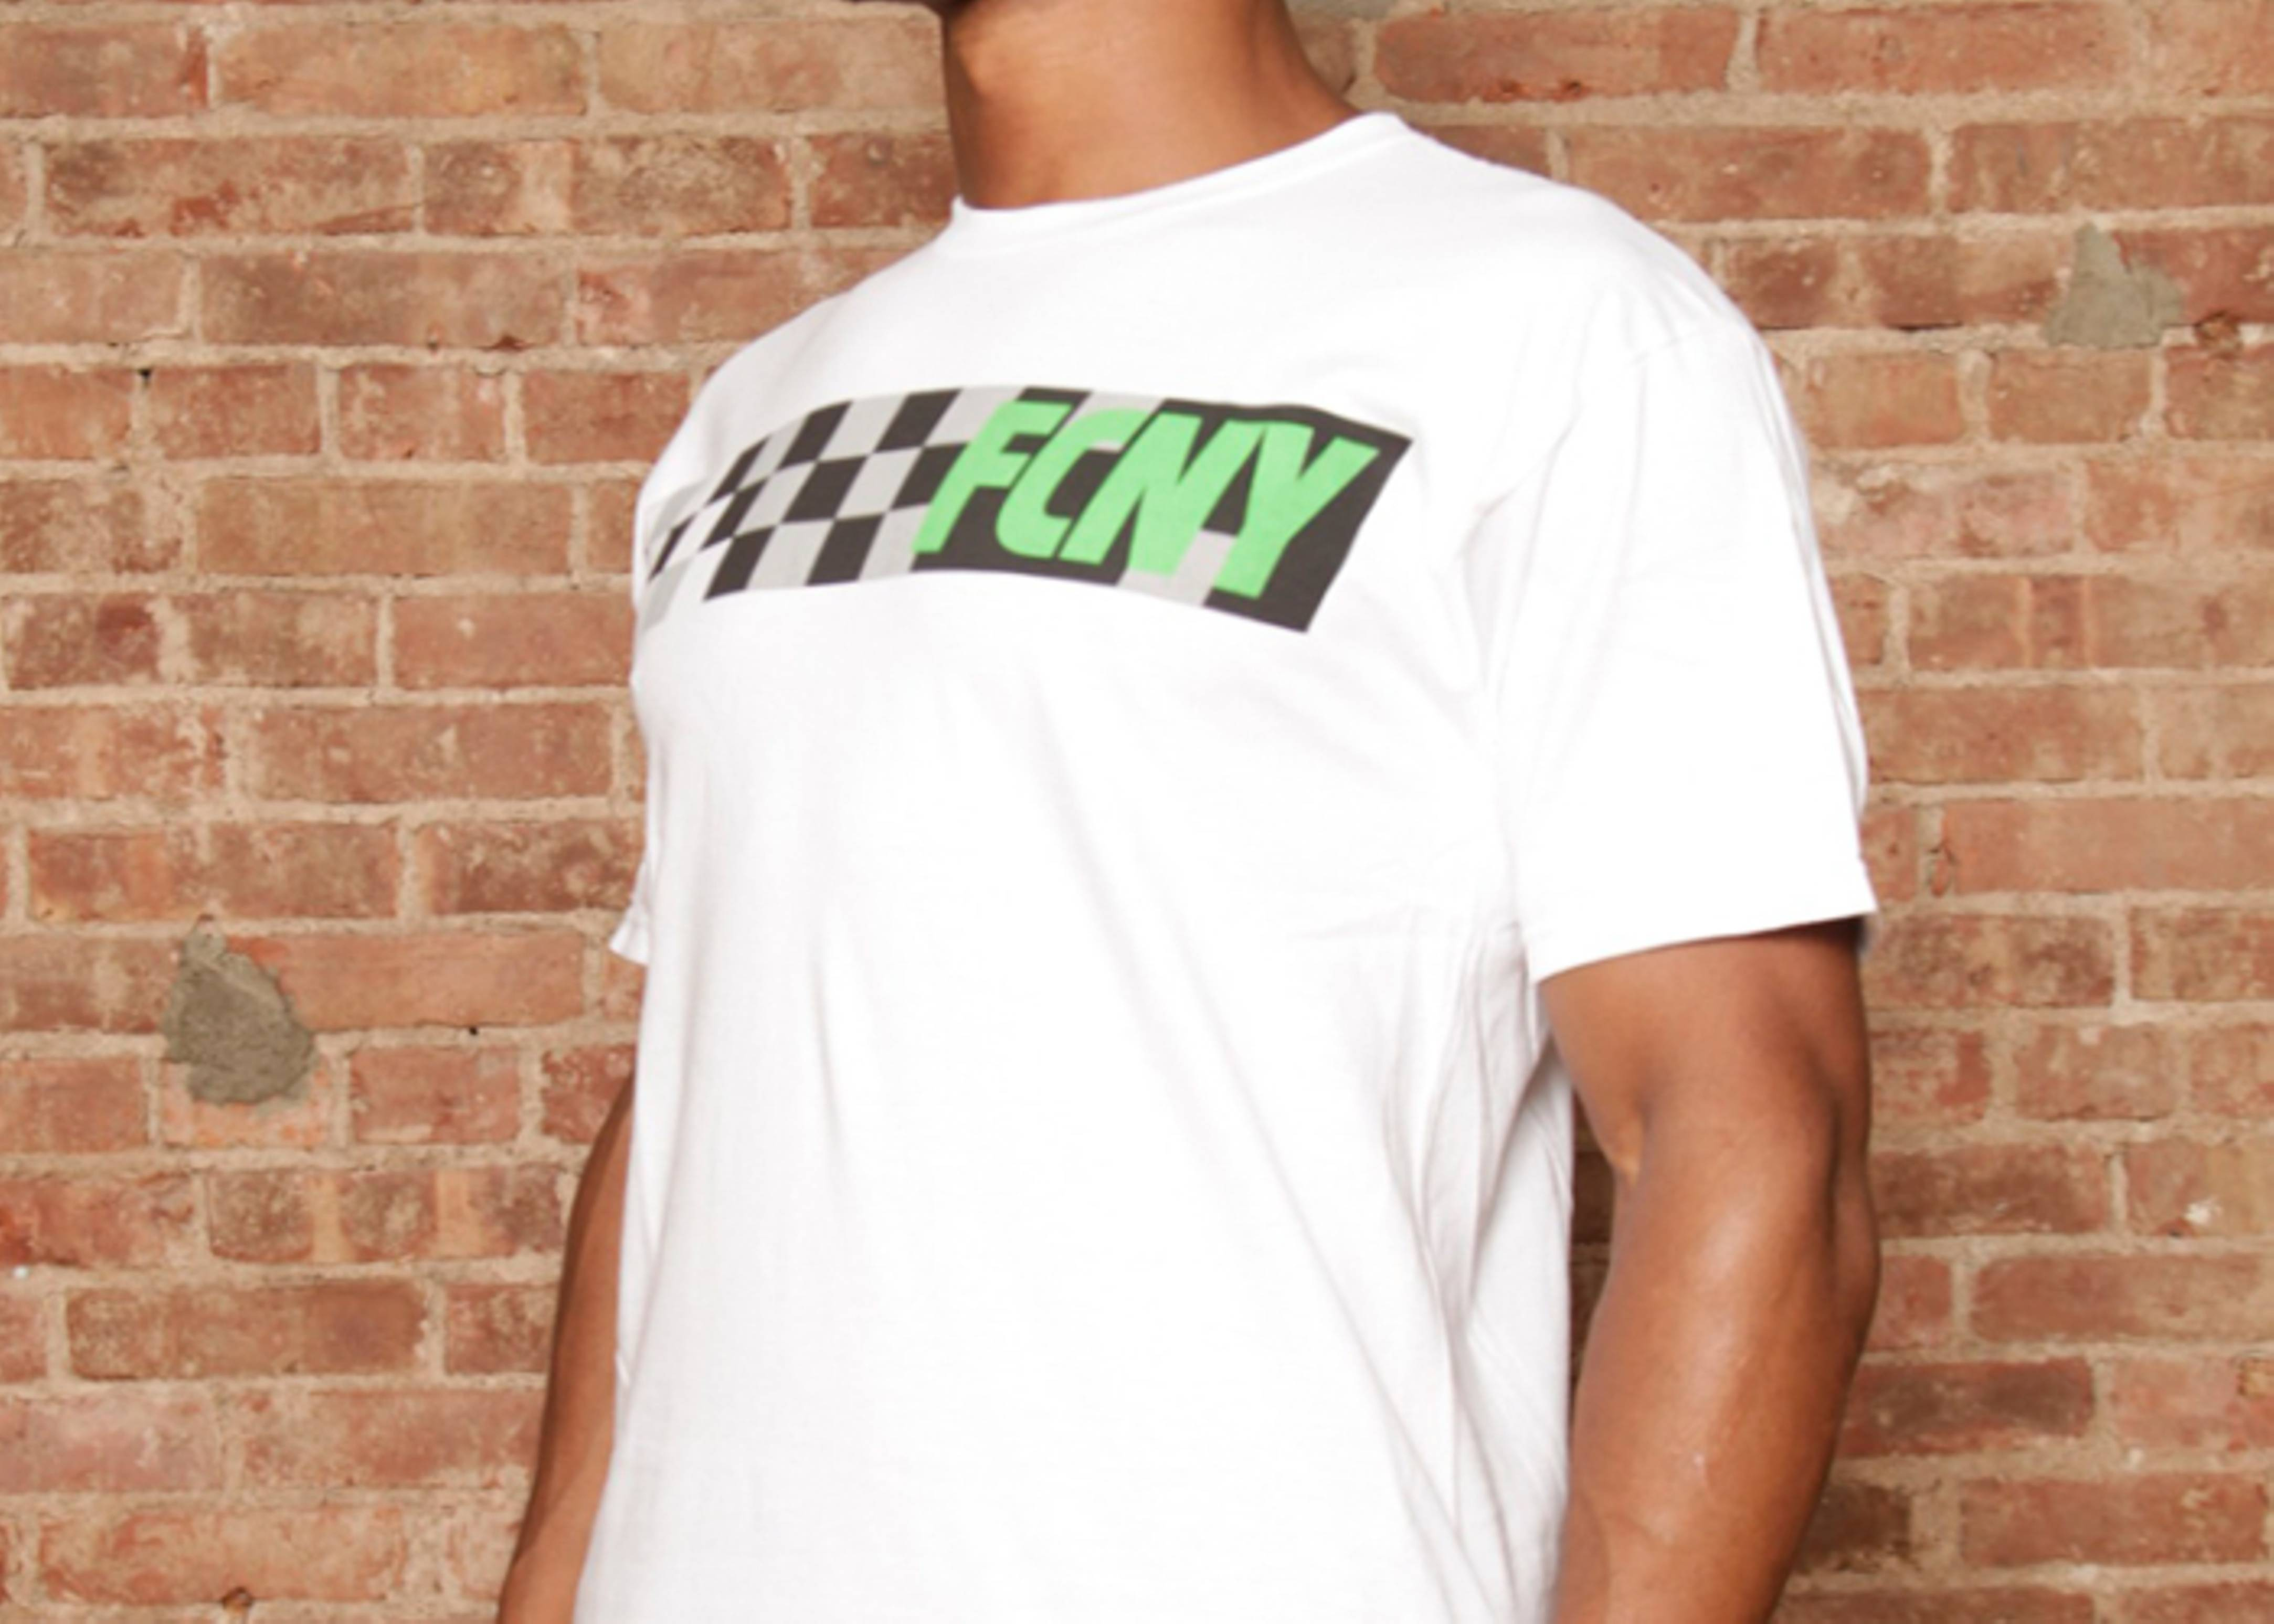 fcny at-one s/s tee